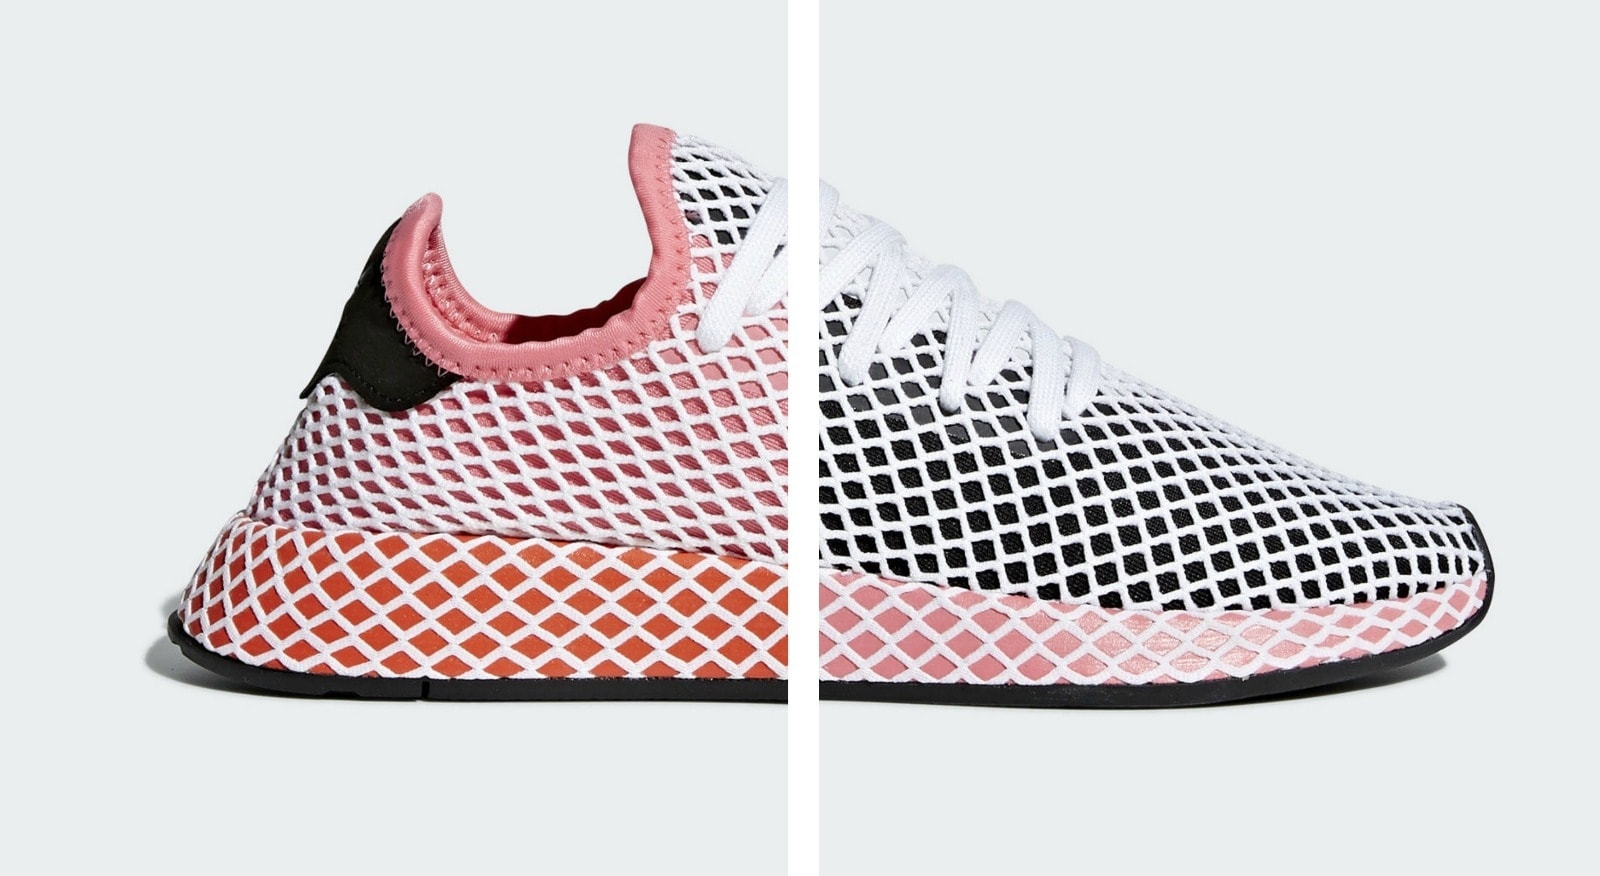 e2ae02f8c08c The adidas Deerupt Runner is finally set to debut next week. With several  eye-catching men s  colorways already revealed